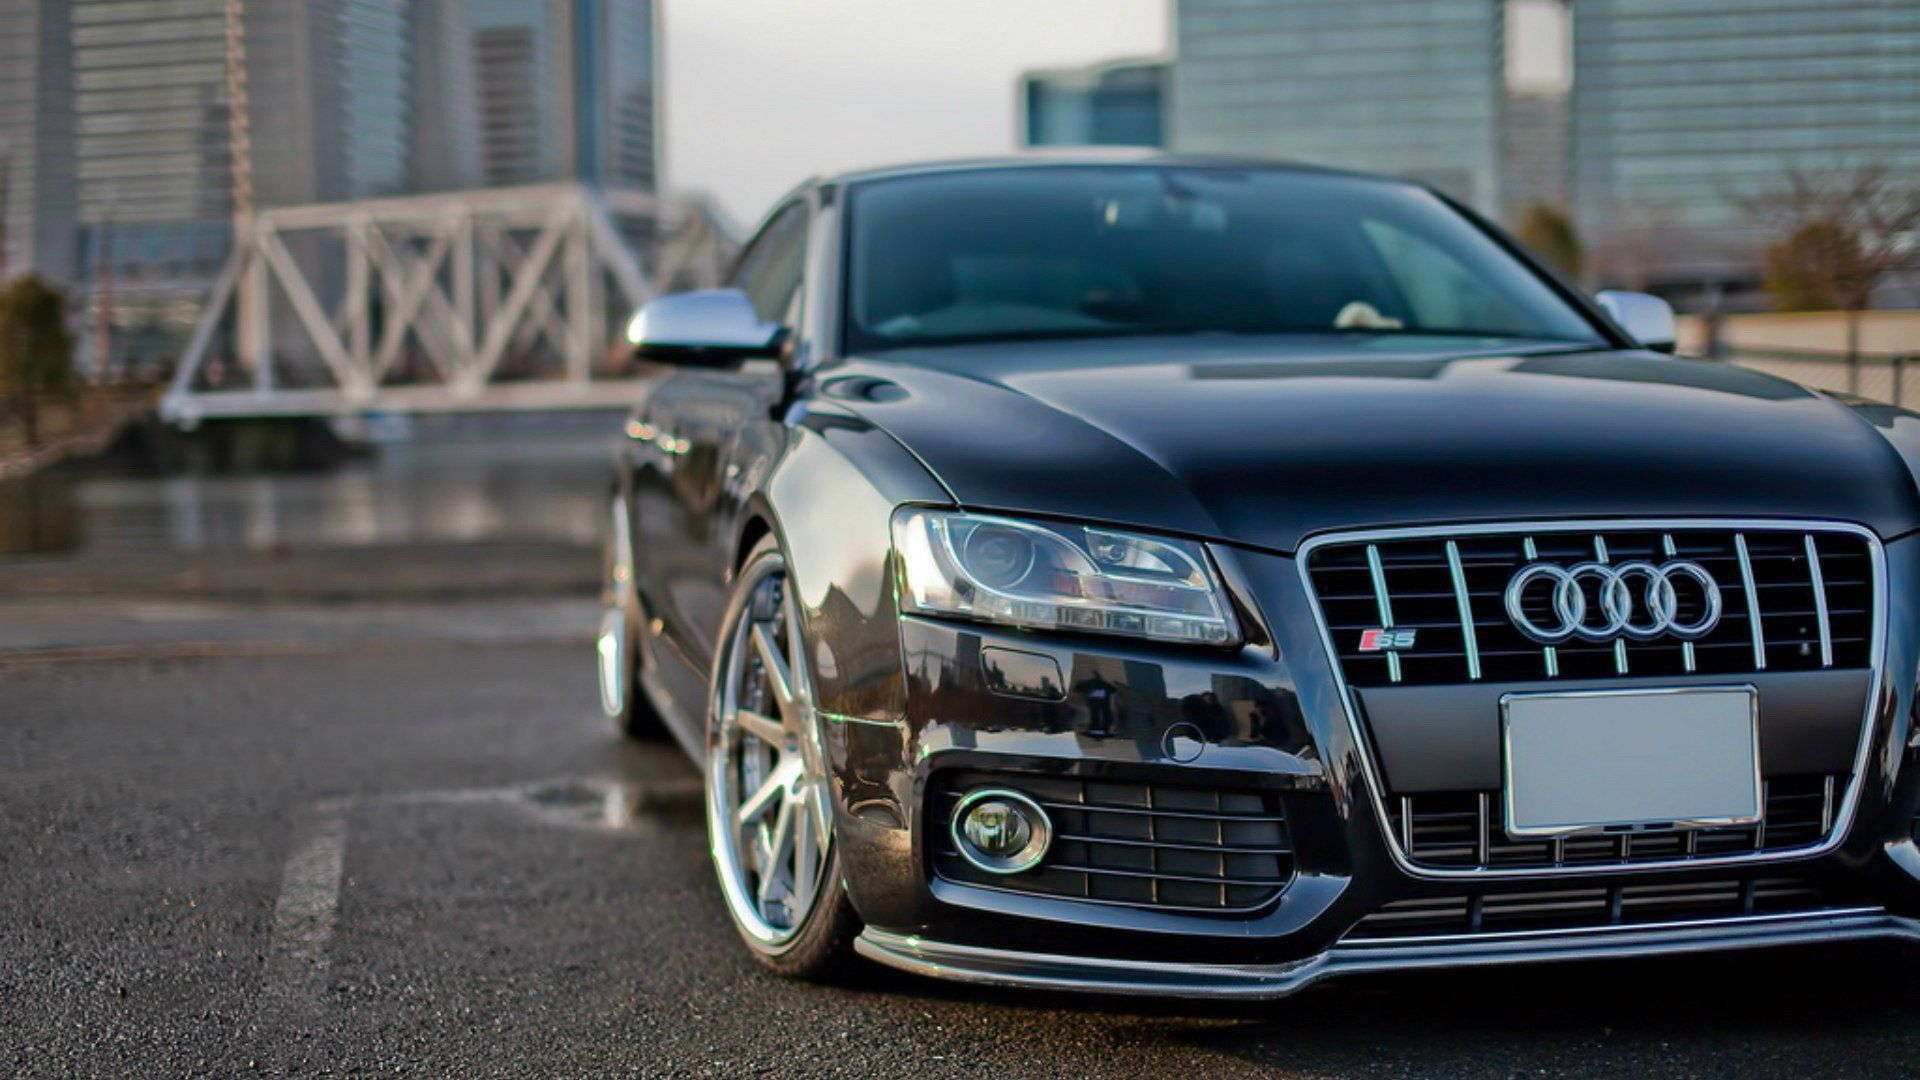 Audi Full HD Wallpapers and Backgrounds Image